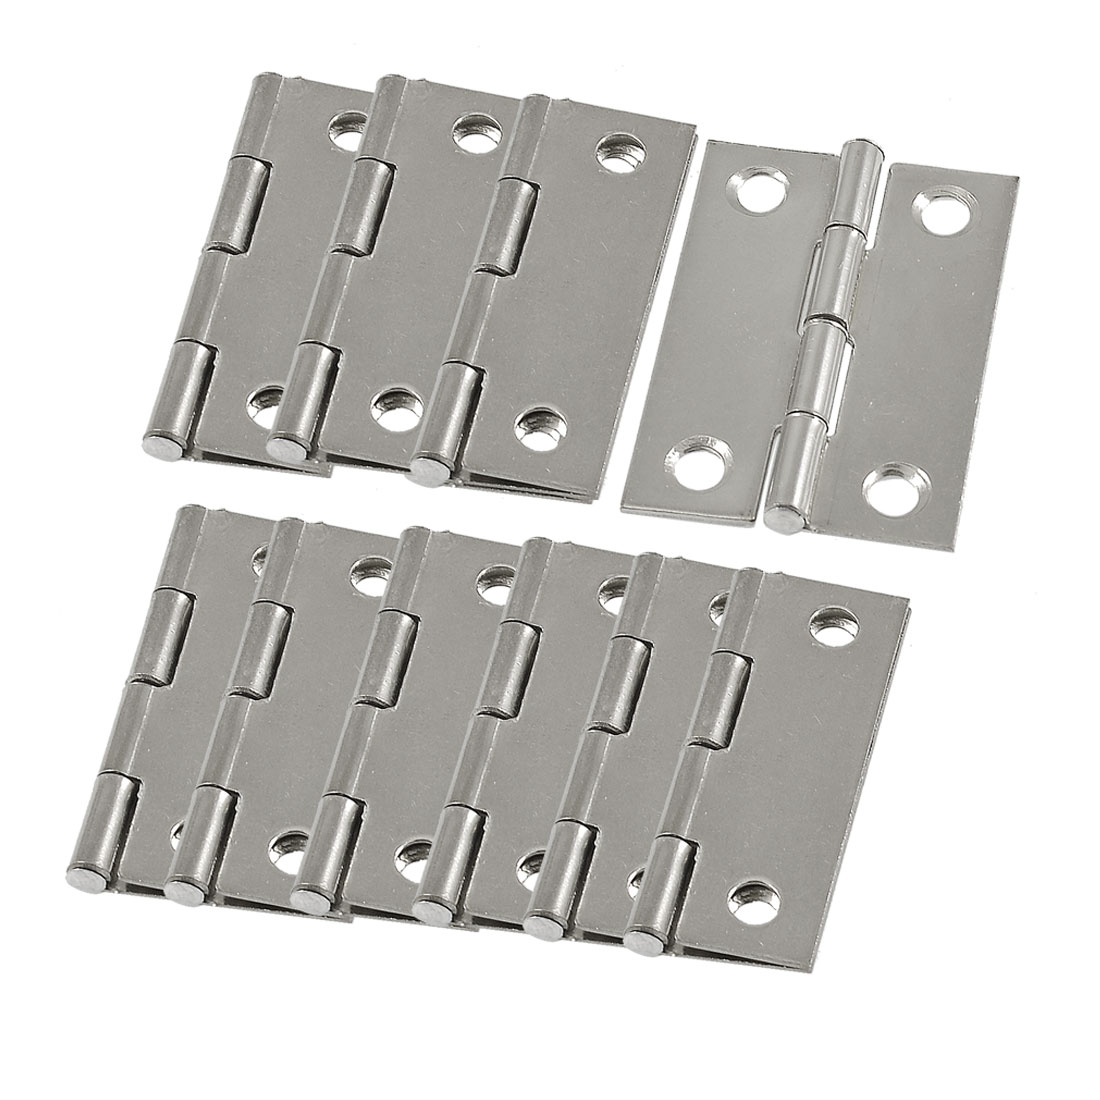 10 Pcs Silver Tone Metal Butt Hinge for Window Cupboard